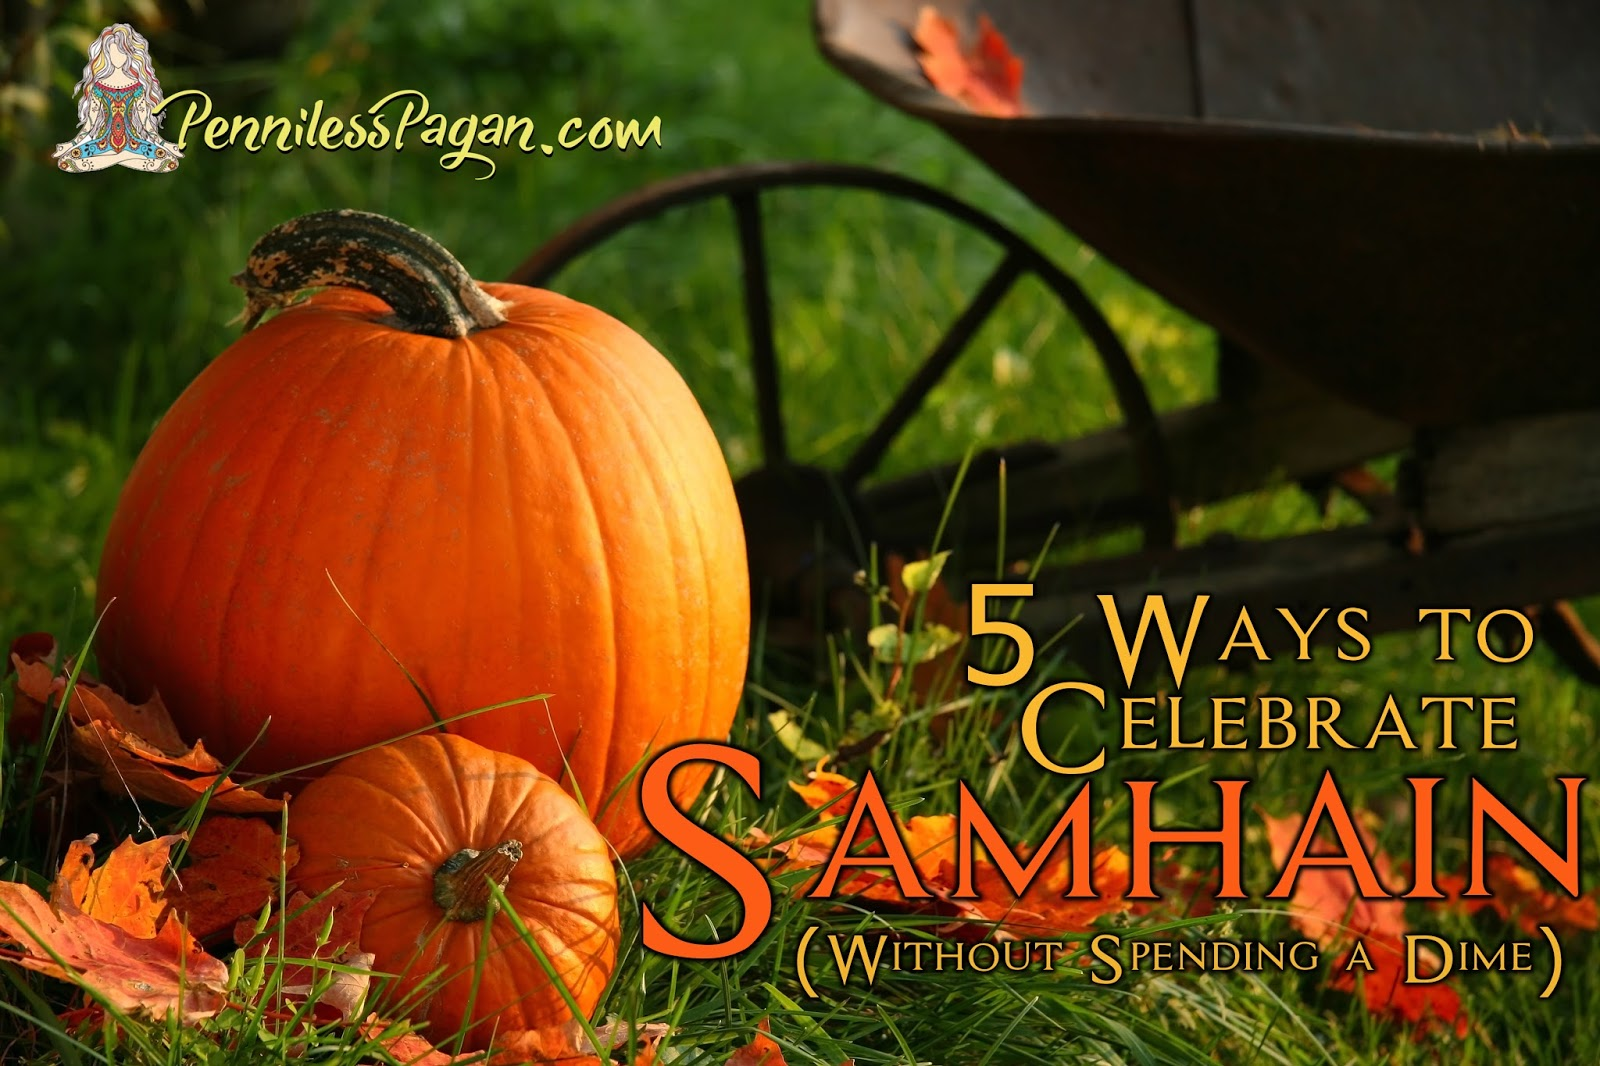 Penniless Pagan: 5 Ways to Celebrate Samhain (Without Spending a Dime)